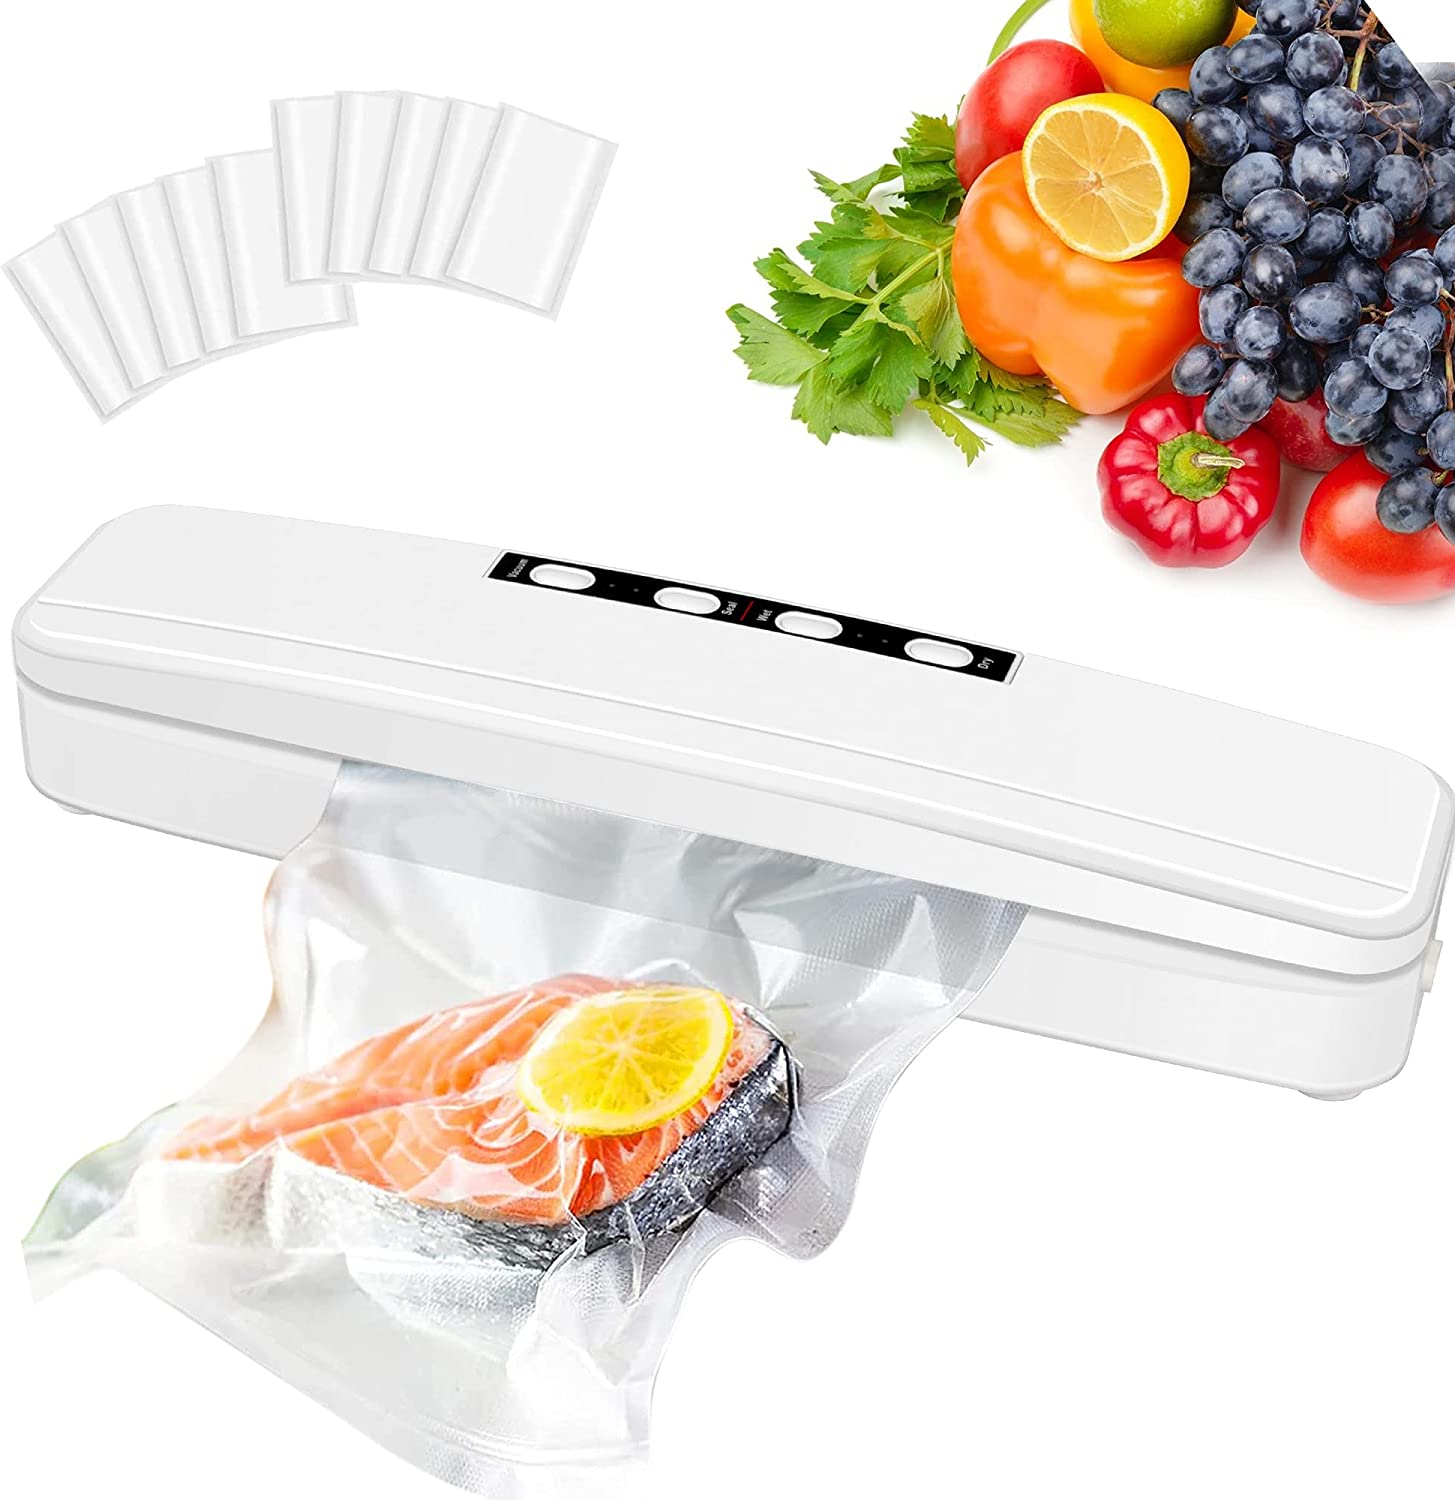 Vacuum Sealer Machine Anzid Popularity With Excellence Automatic Food Starter